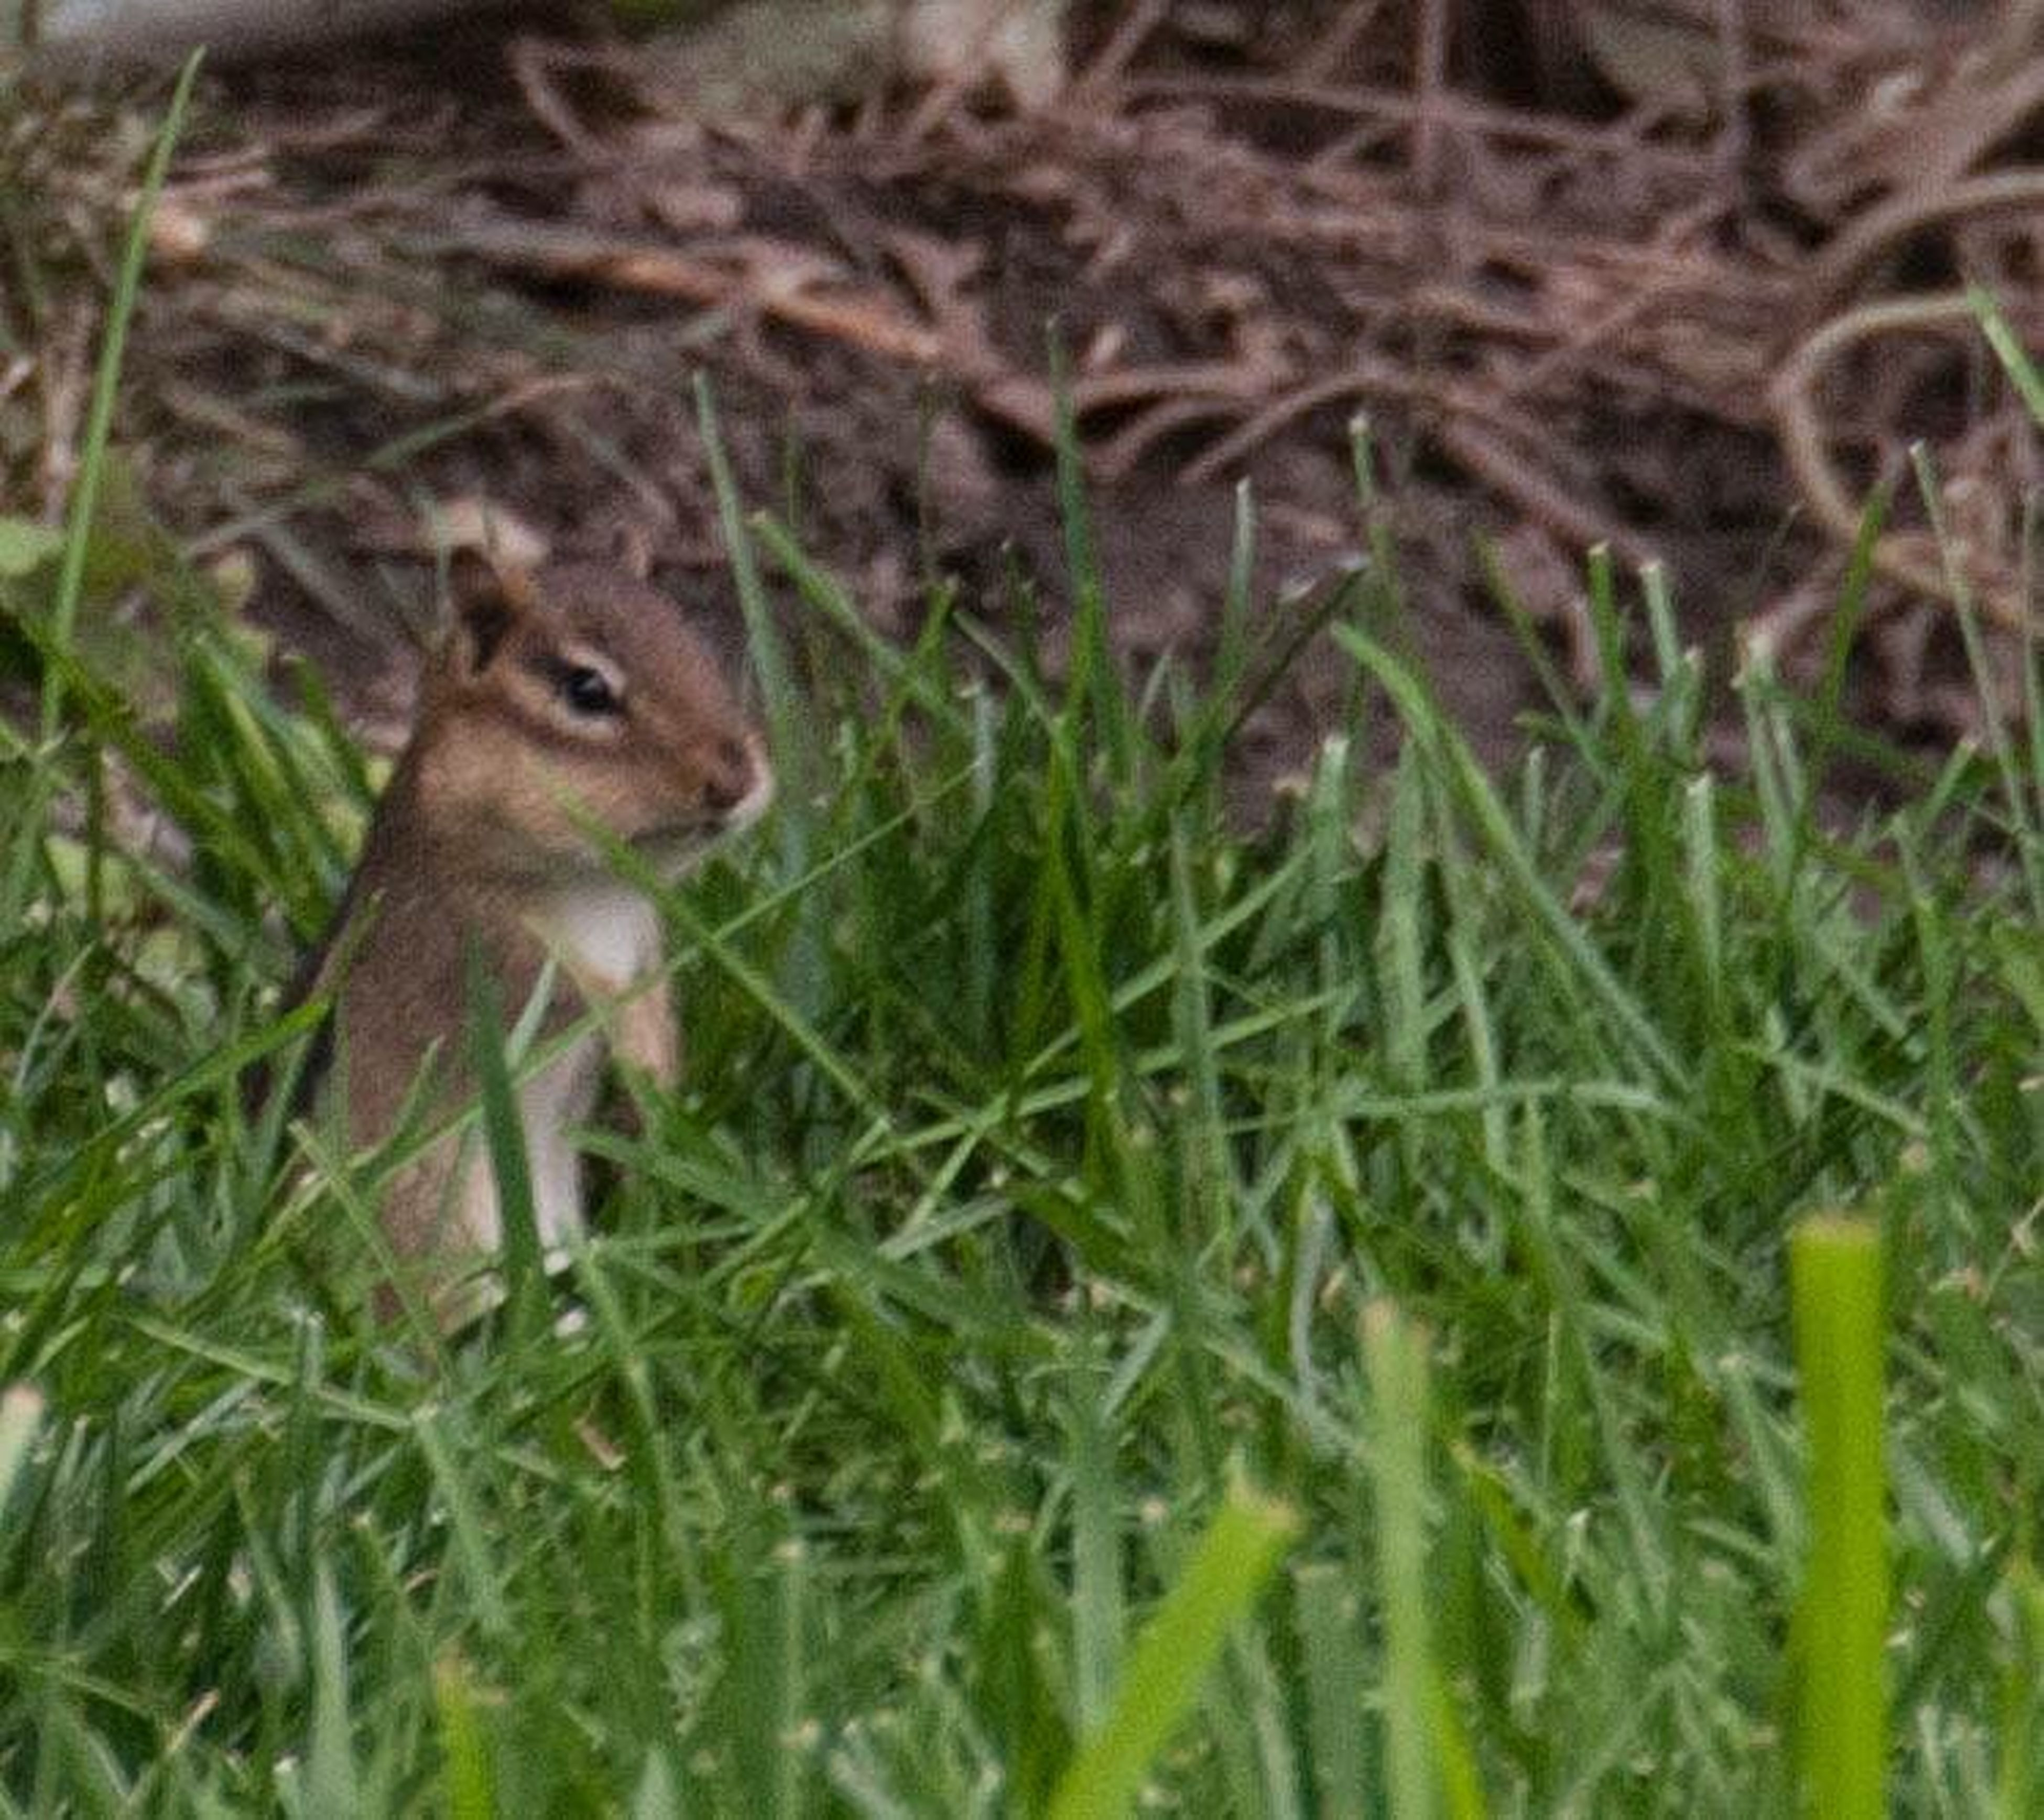 animal themes, one animal, animals in the wild, wildlife, grass, mammal, field, green color, nature, selective focus, plant, outdoors, day, growth, grassy, no people, young animal, squirrel, full length, sitting